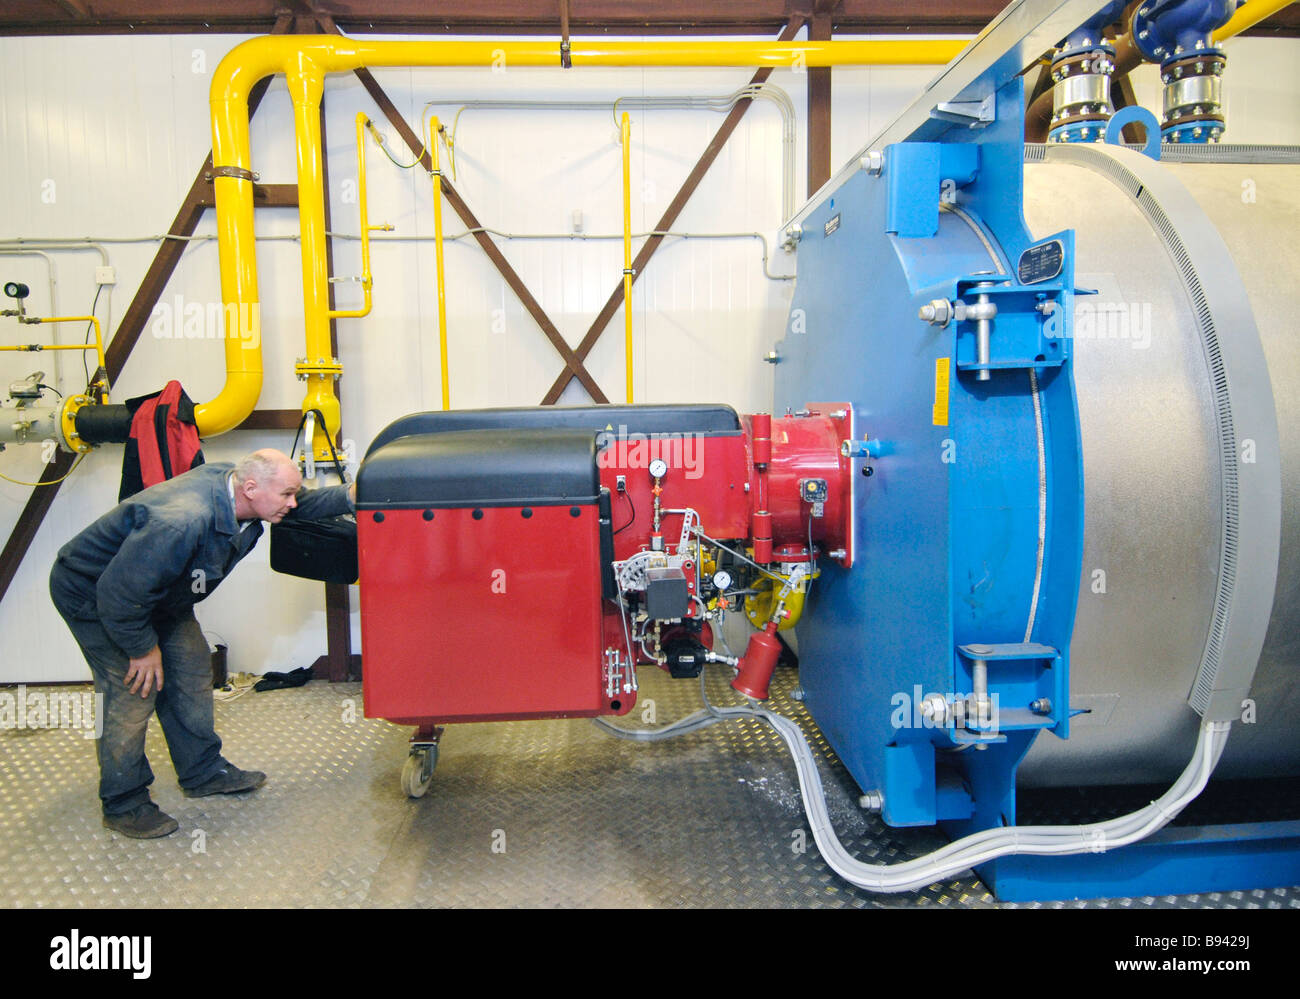 Operating new generation boiler room Expert watches operational water heating boiler - Stock Image